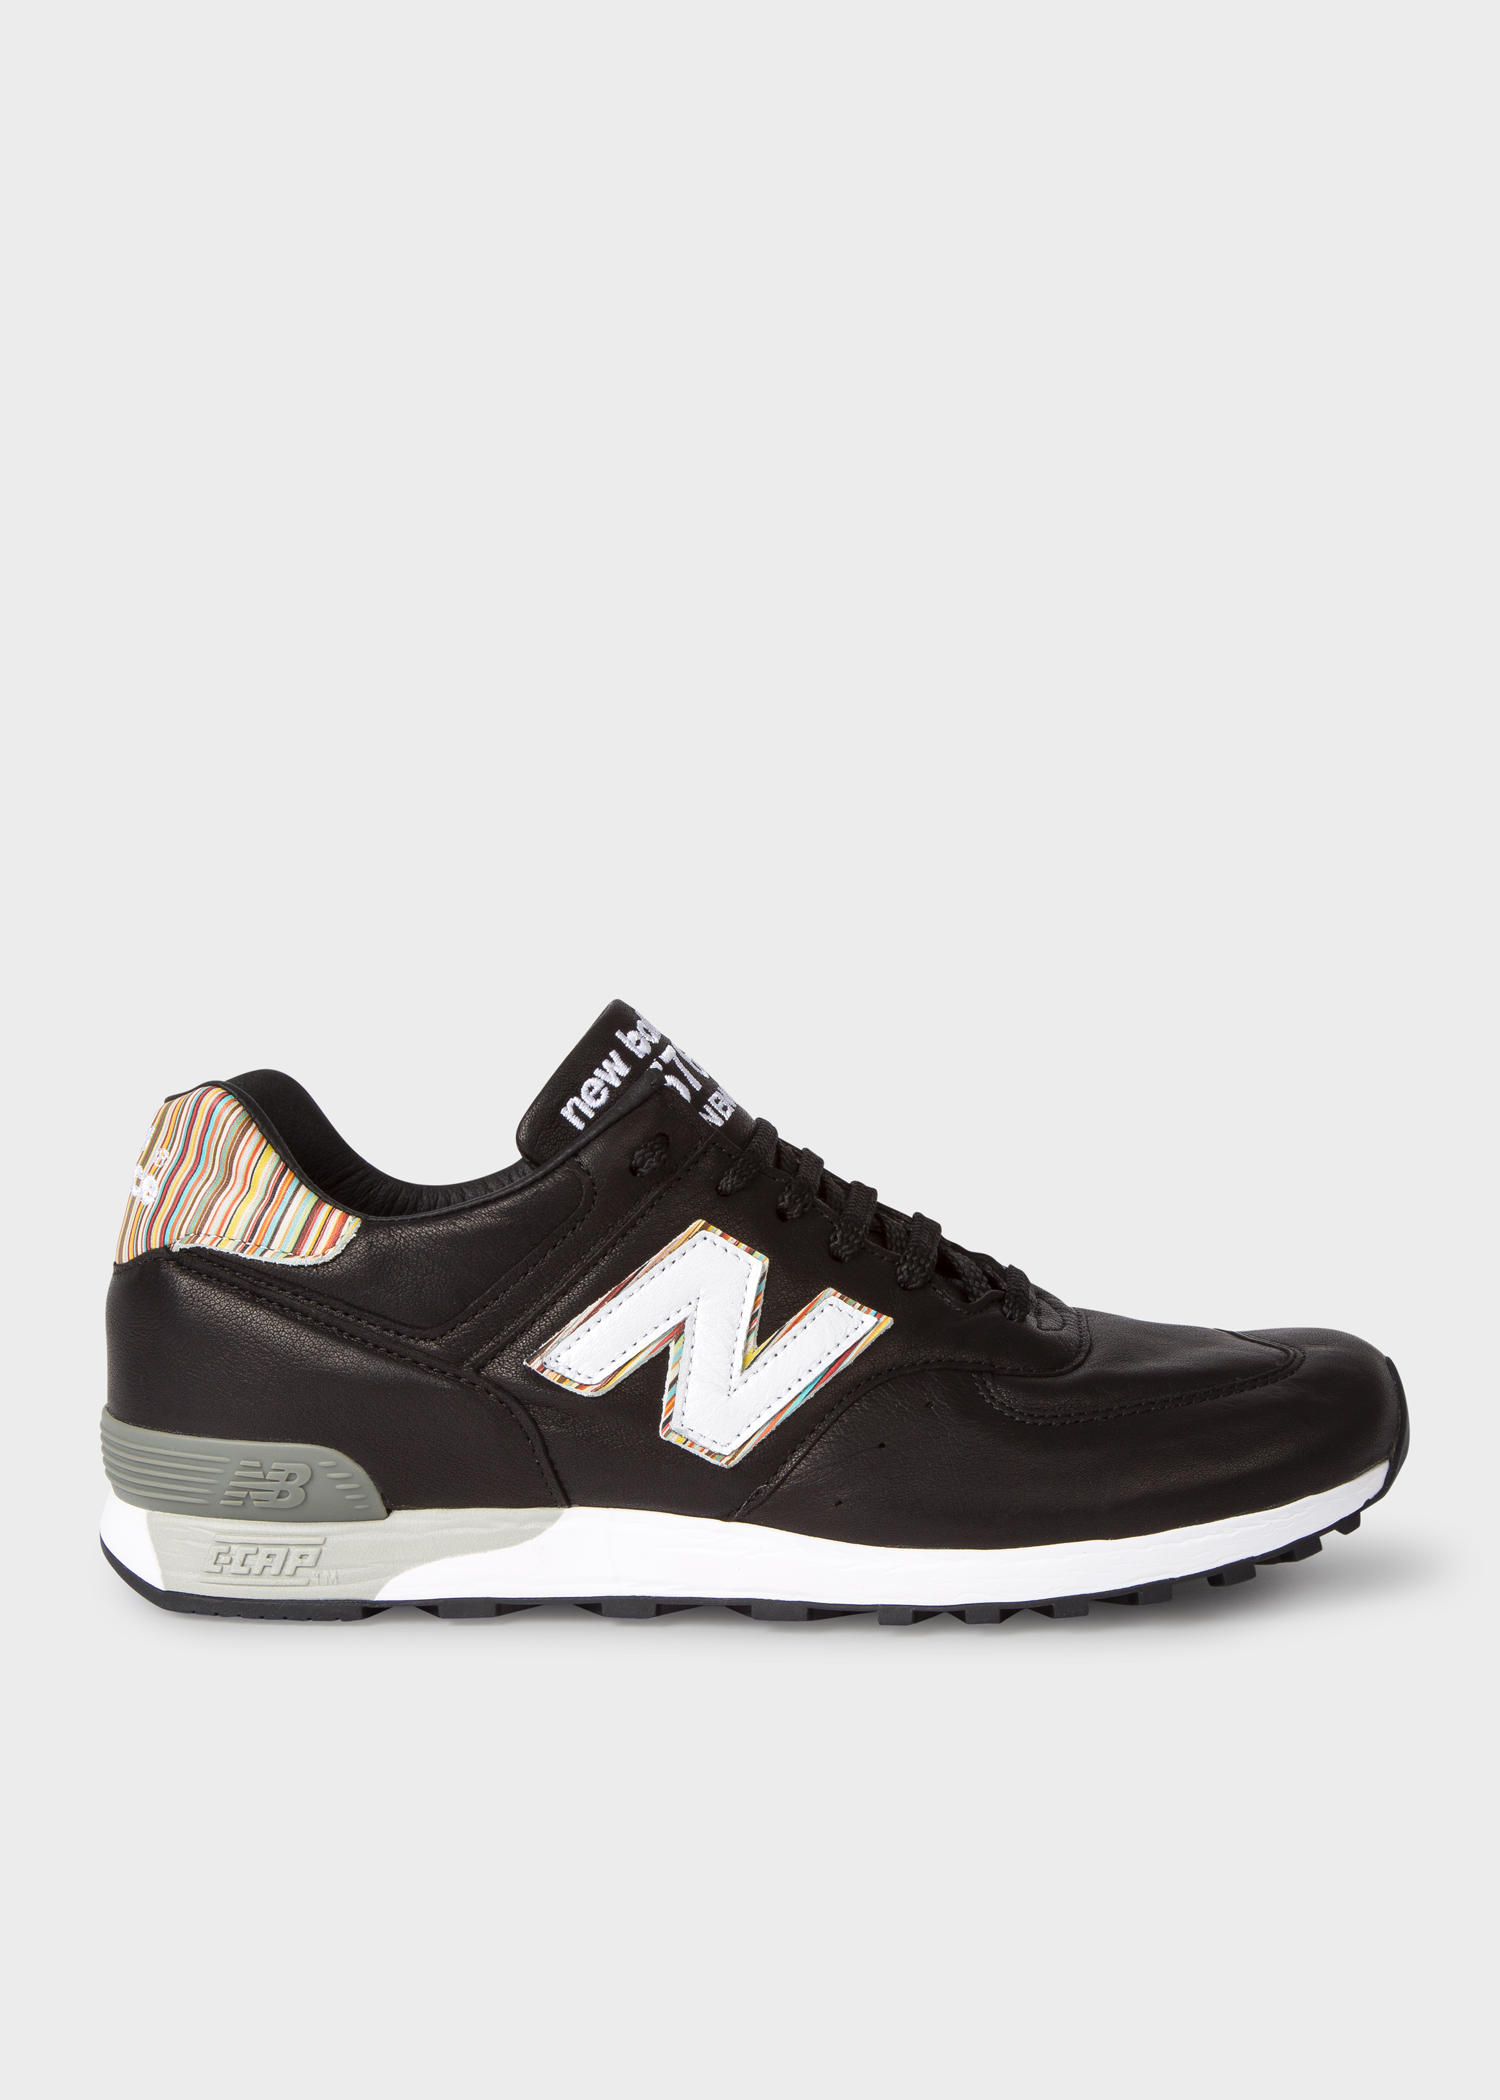 New Balance + Paul Smith - Men's Black Leather 576 Trainers